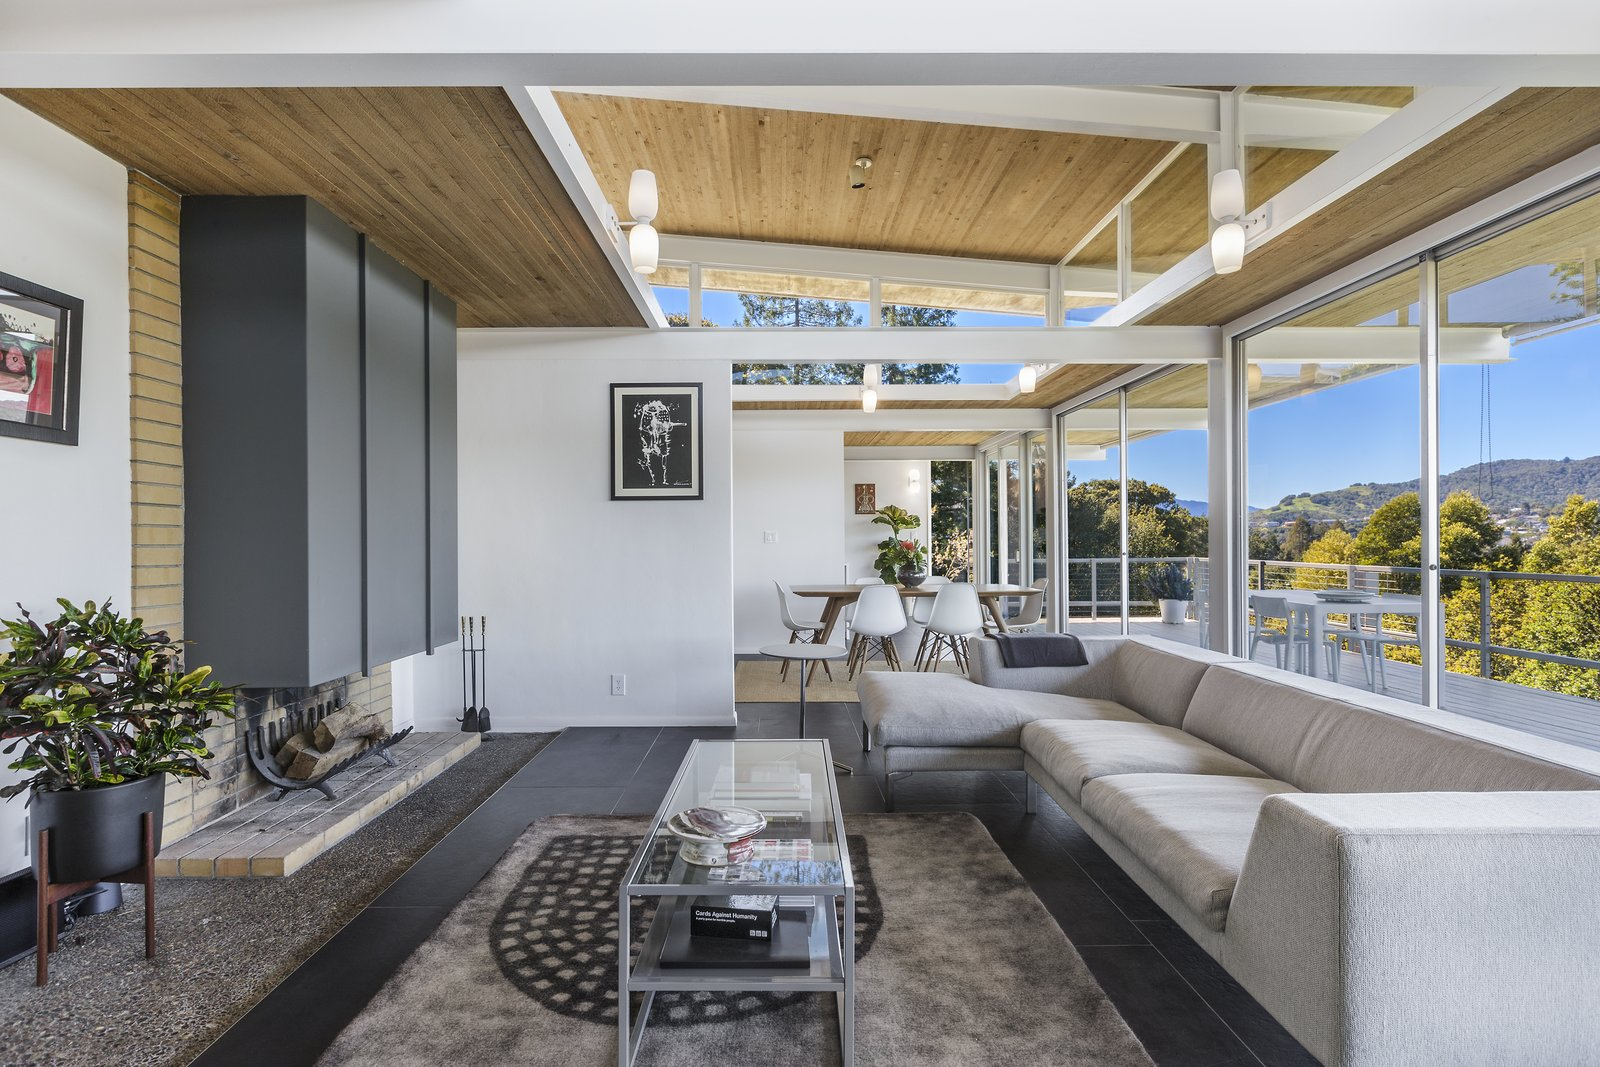 Living Room, Coffee Tables, Sectional, Wall Lighting, Rug Floor, Wood Burning Fireplace, Table, Chair, and Concrete Floor  Photo 6 of 17 in Spend the Night in an Iconic Case Study House North of San Francisco